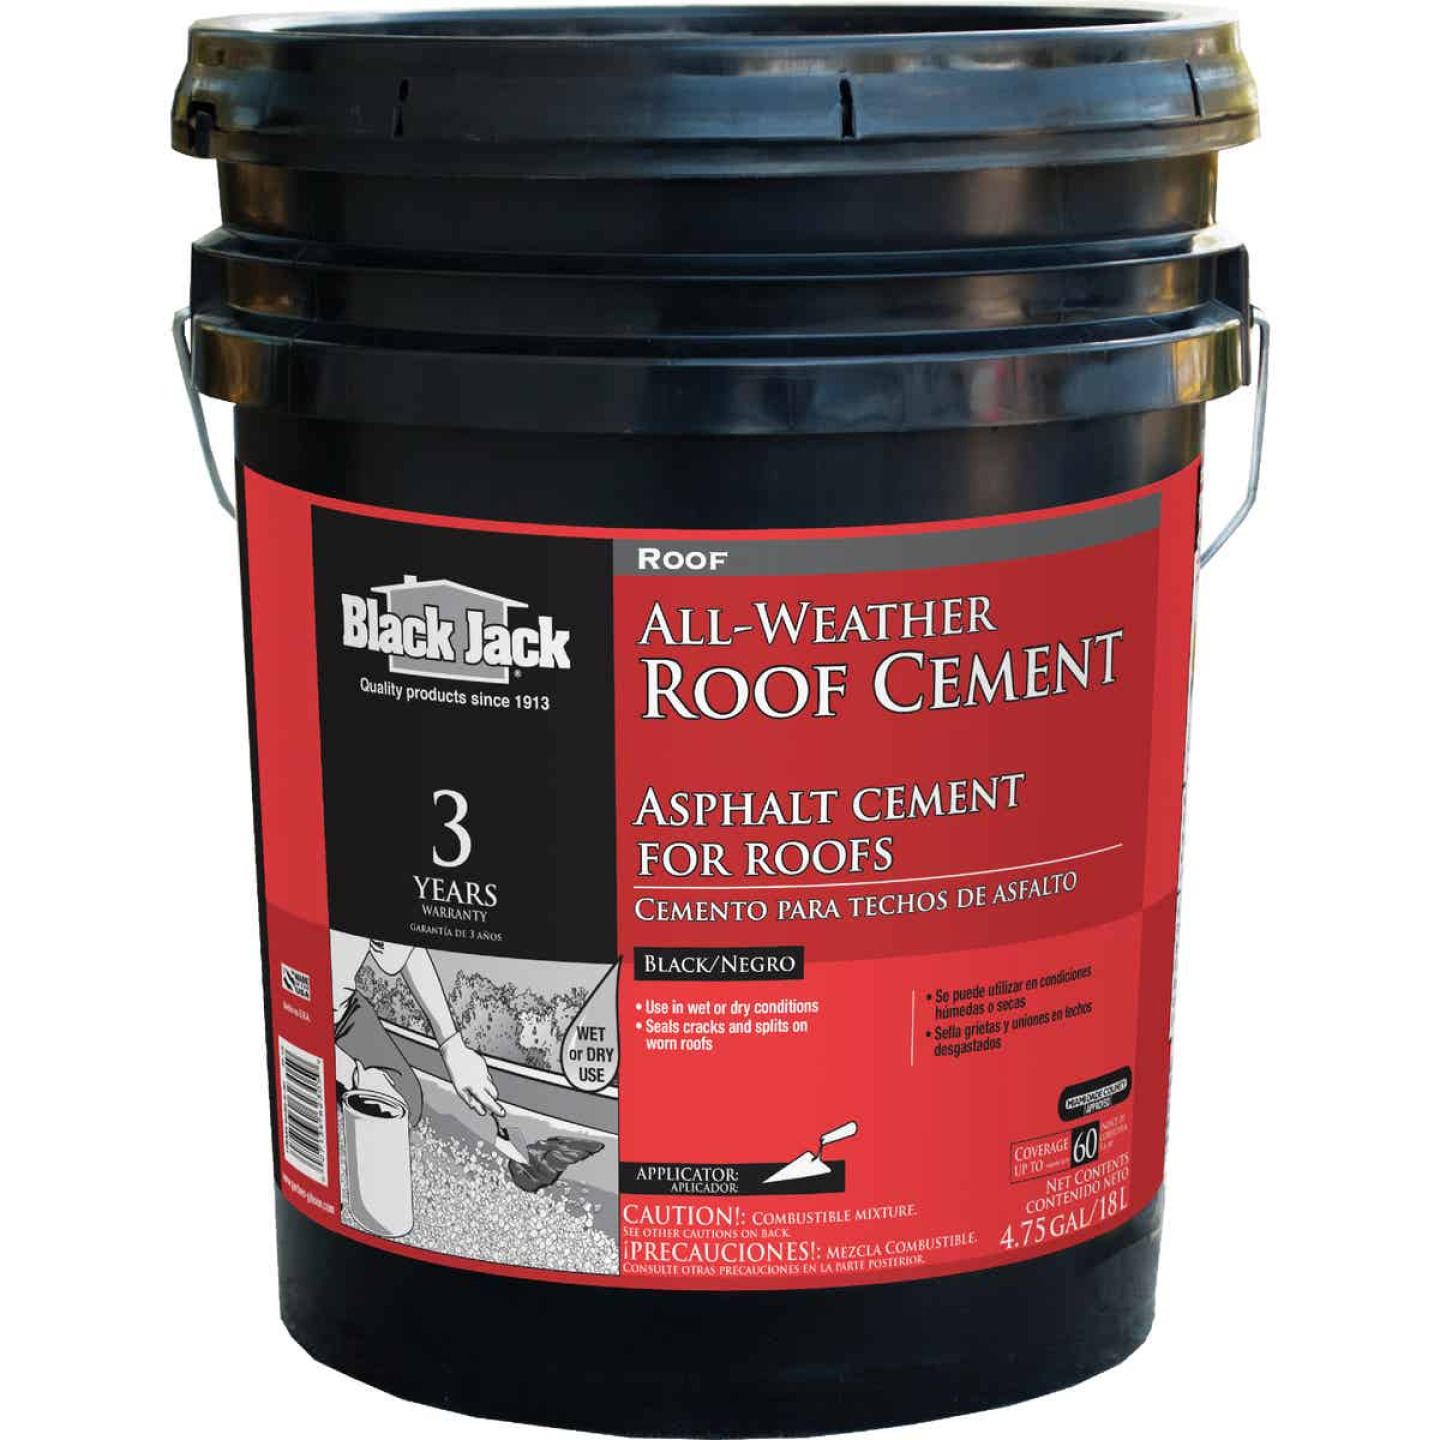 Black Jack 5 Gal. All-Weather Roof Cement Image 1